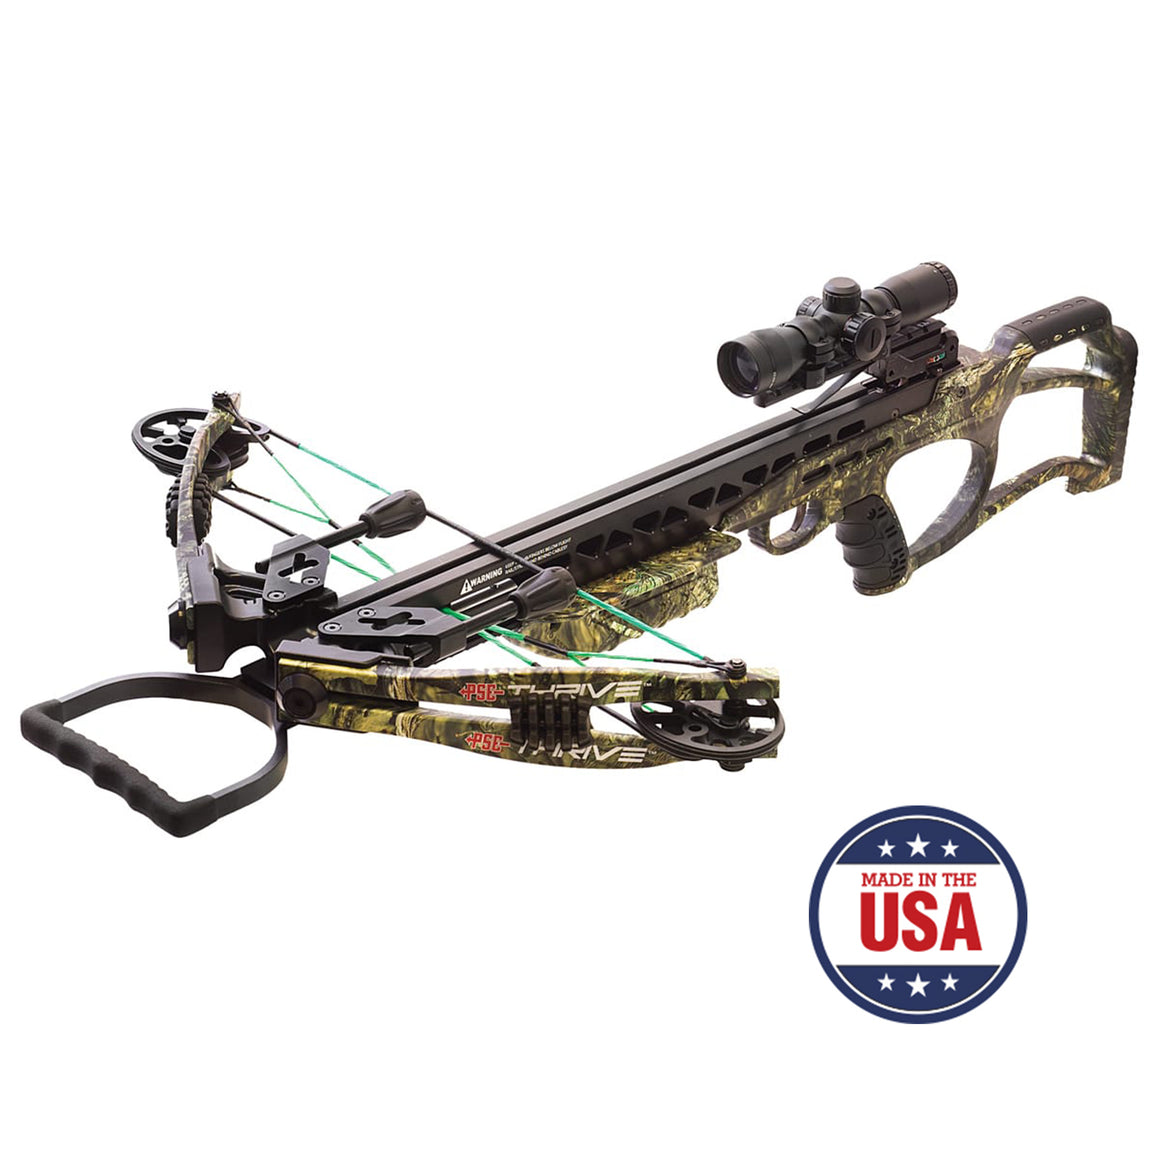 PSE Thrive 365 Crossbow